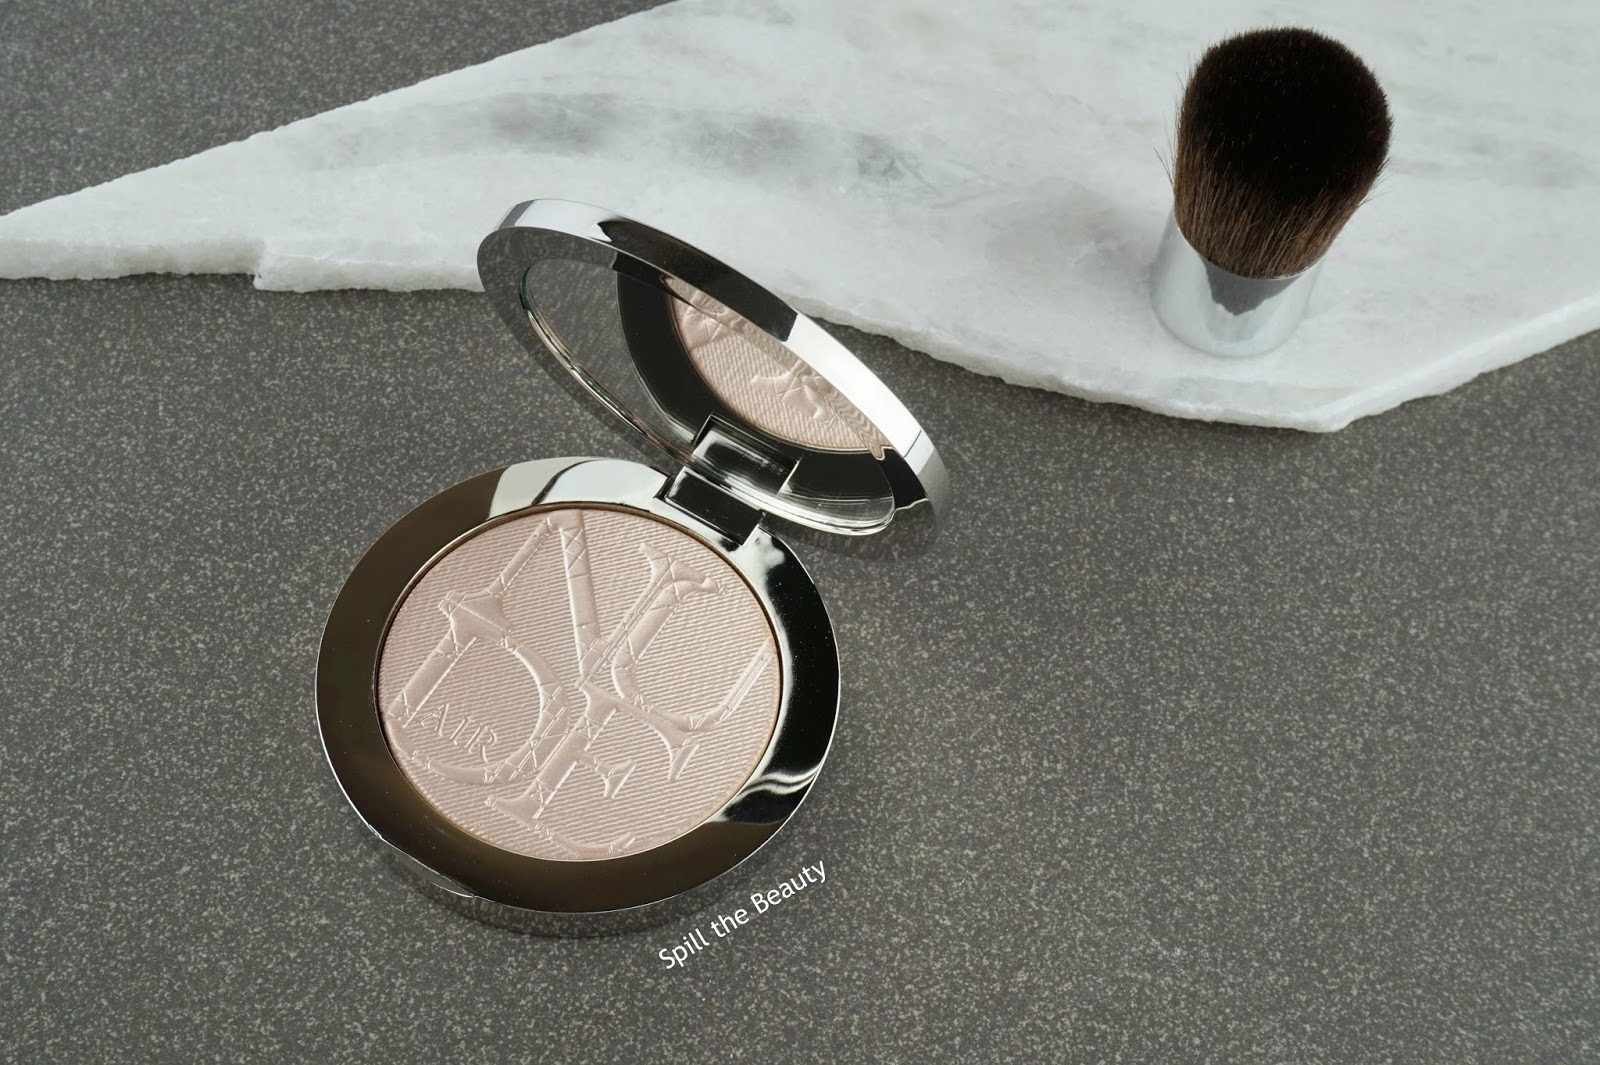 Nude Look Dior Diorskin Nude Air Luminizer Shimmering Sculpting Powder #002 - Review, Swatches, And Look - Spill The Beauty